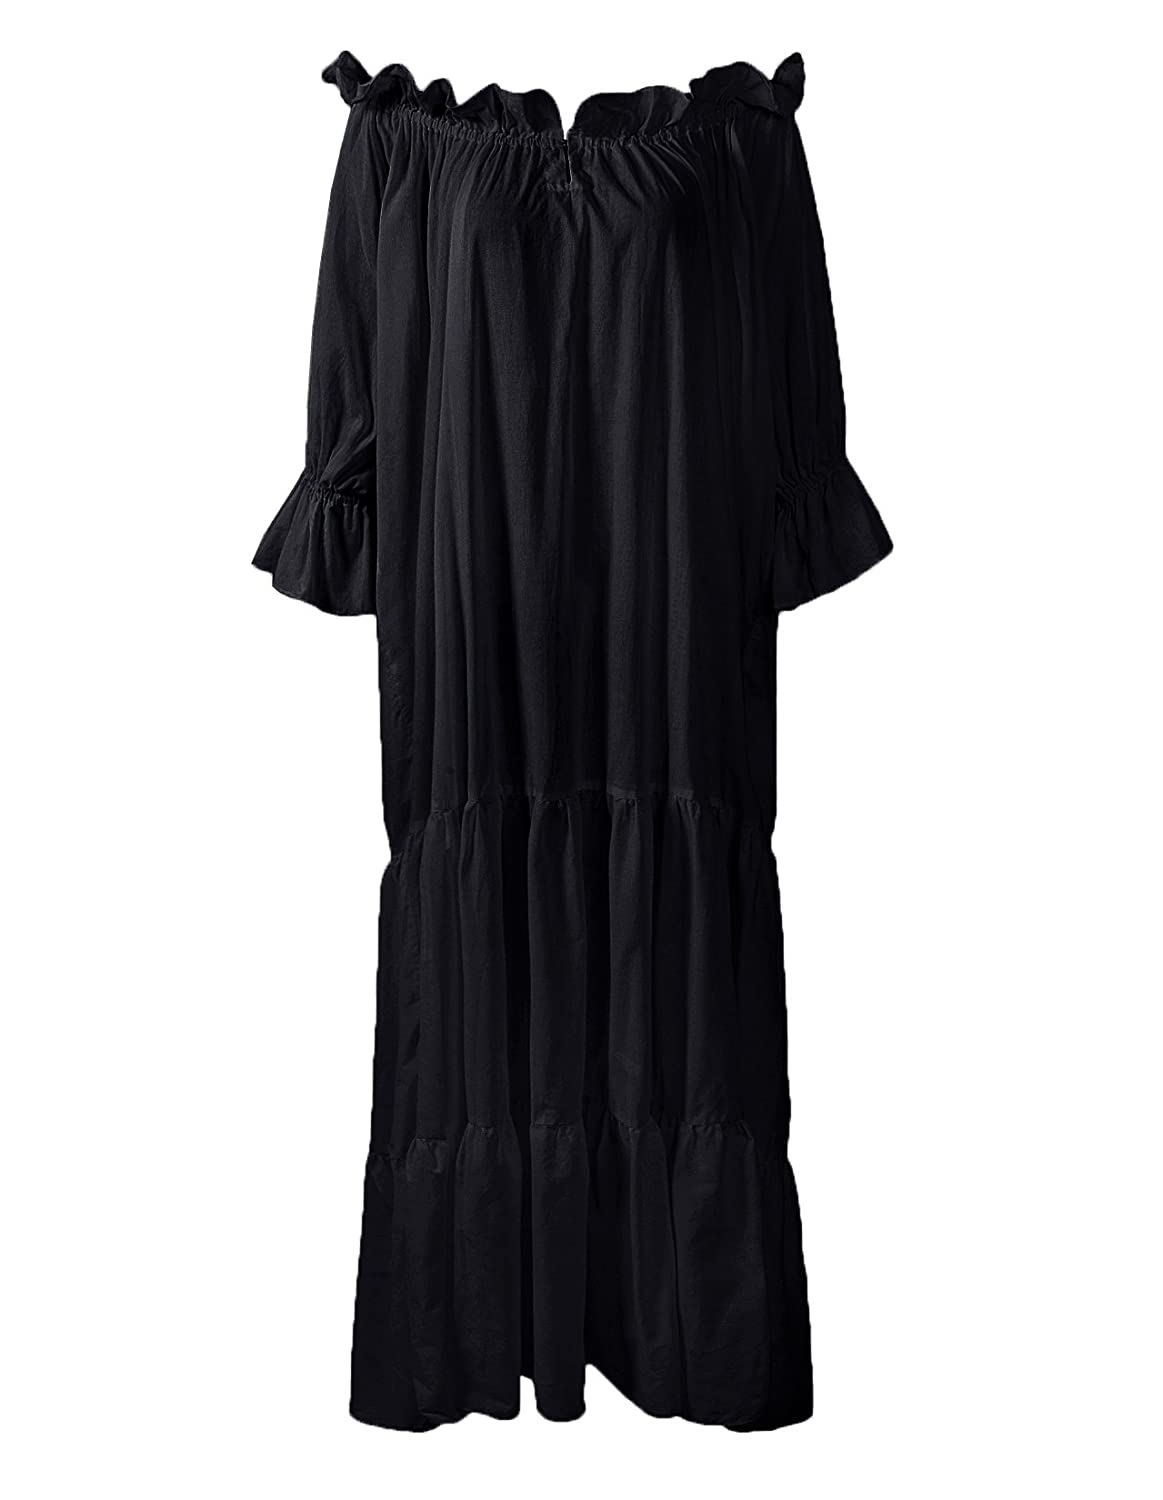 Renaissance Medieval Ruffled Tiered Sleeve Classic Black Chemise - DeluxeAdultCostumes.com